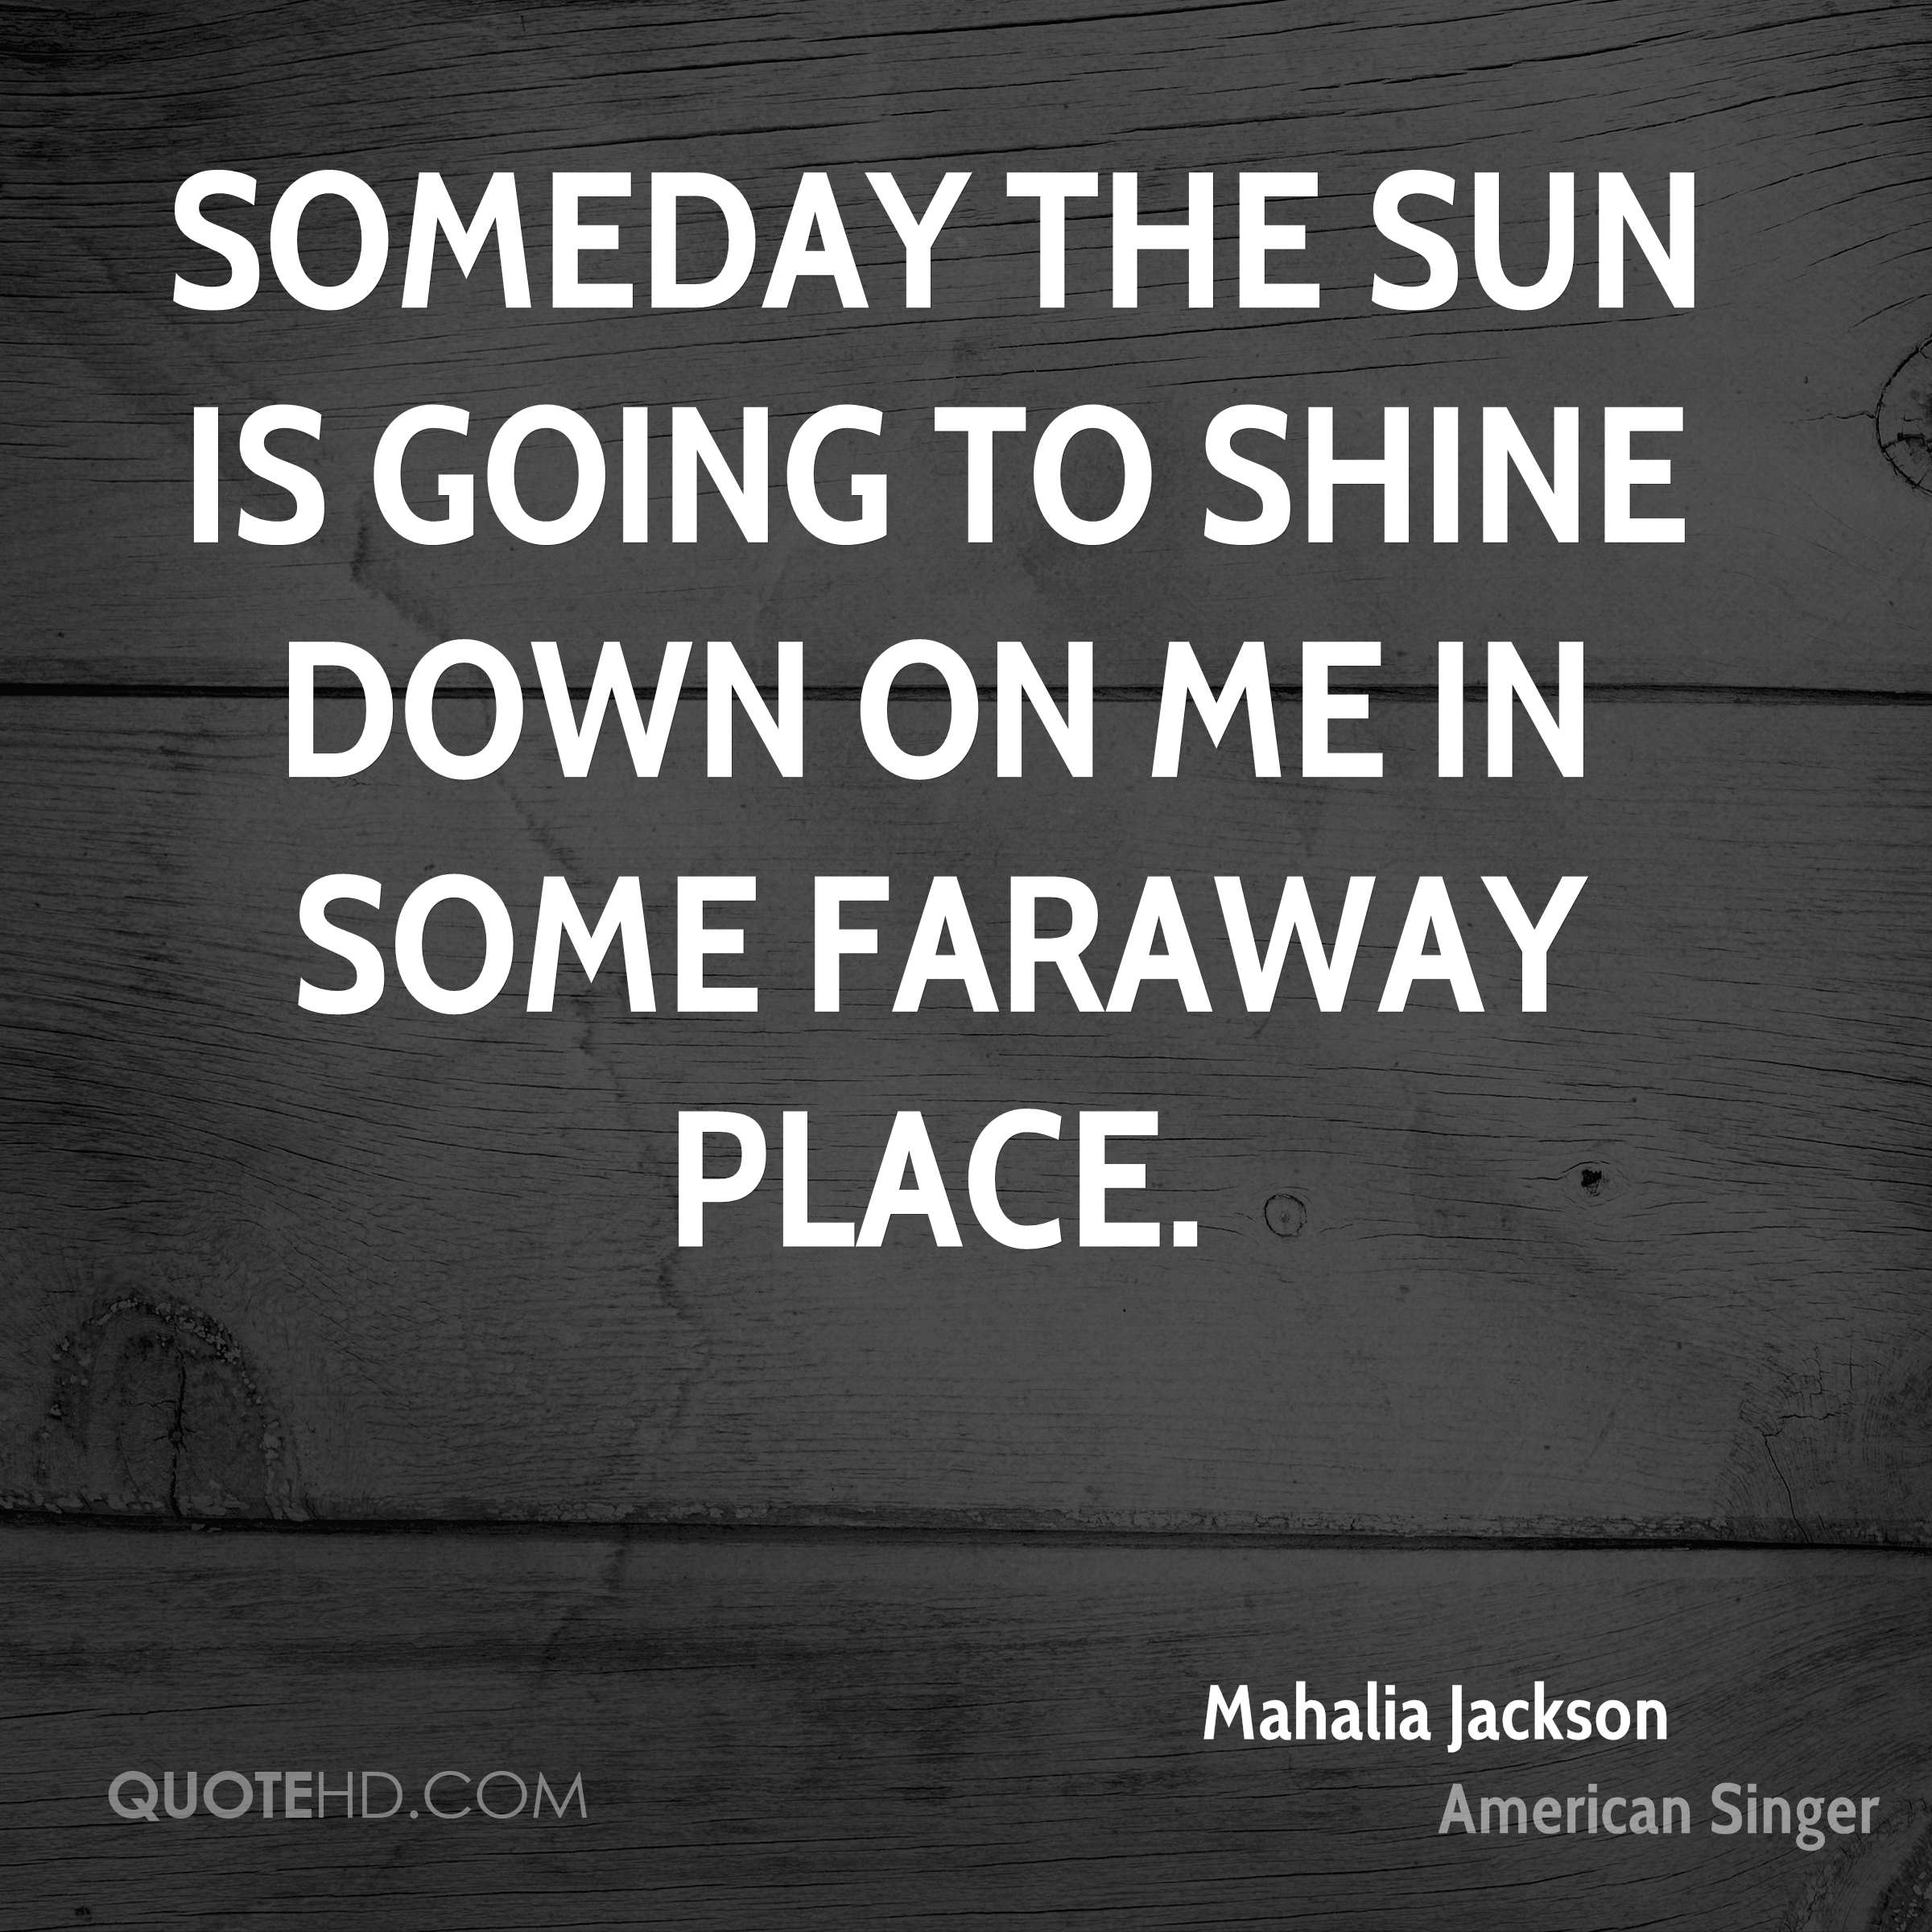 Someday the sun is going to shine down on me in some faraway place.